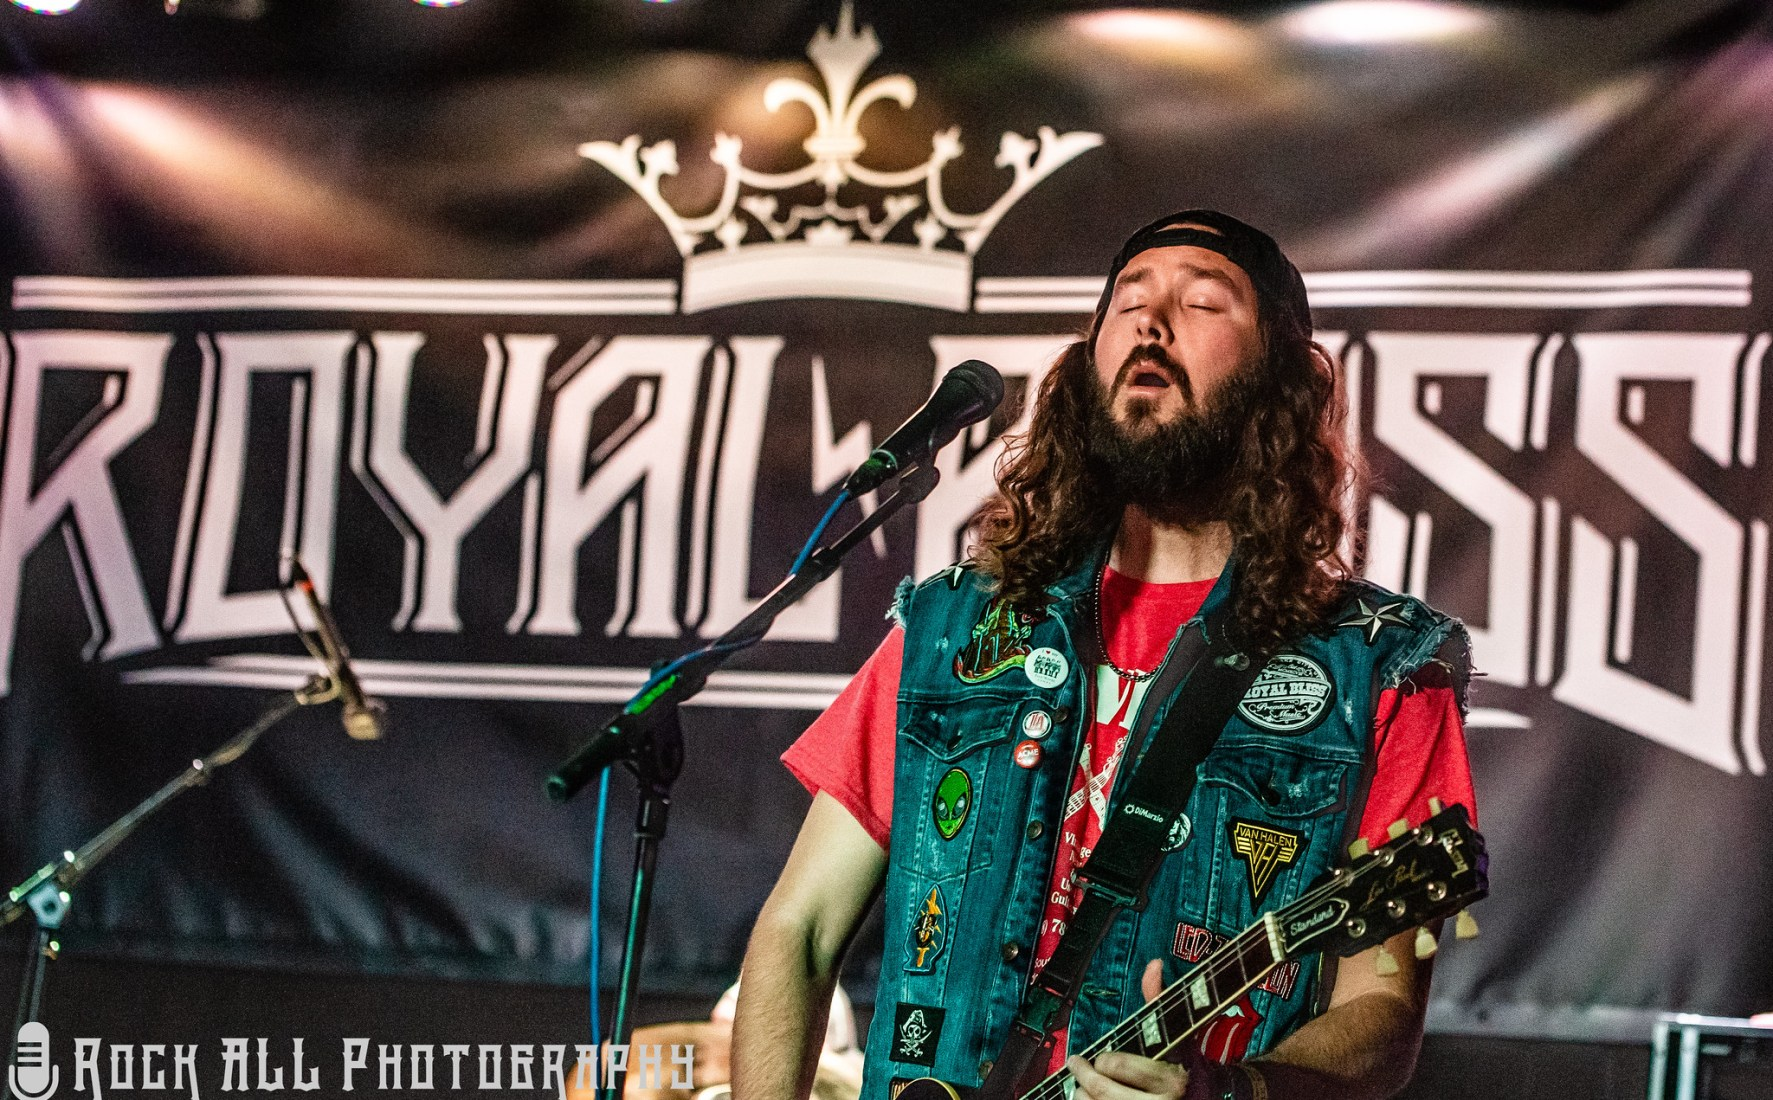 Royal Bliss - Trixies Tiger Room Louisville 10-5